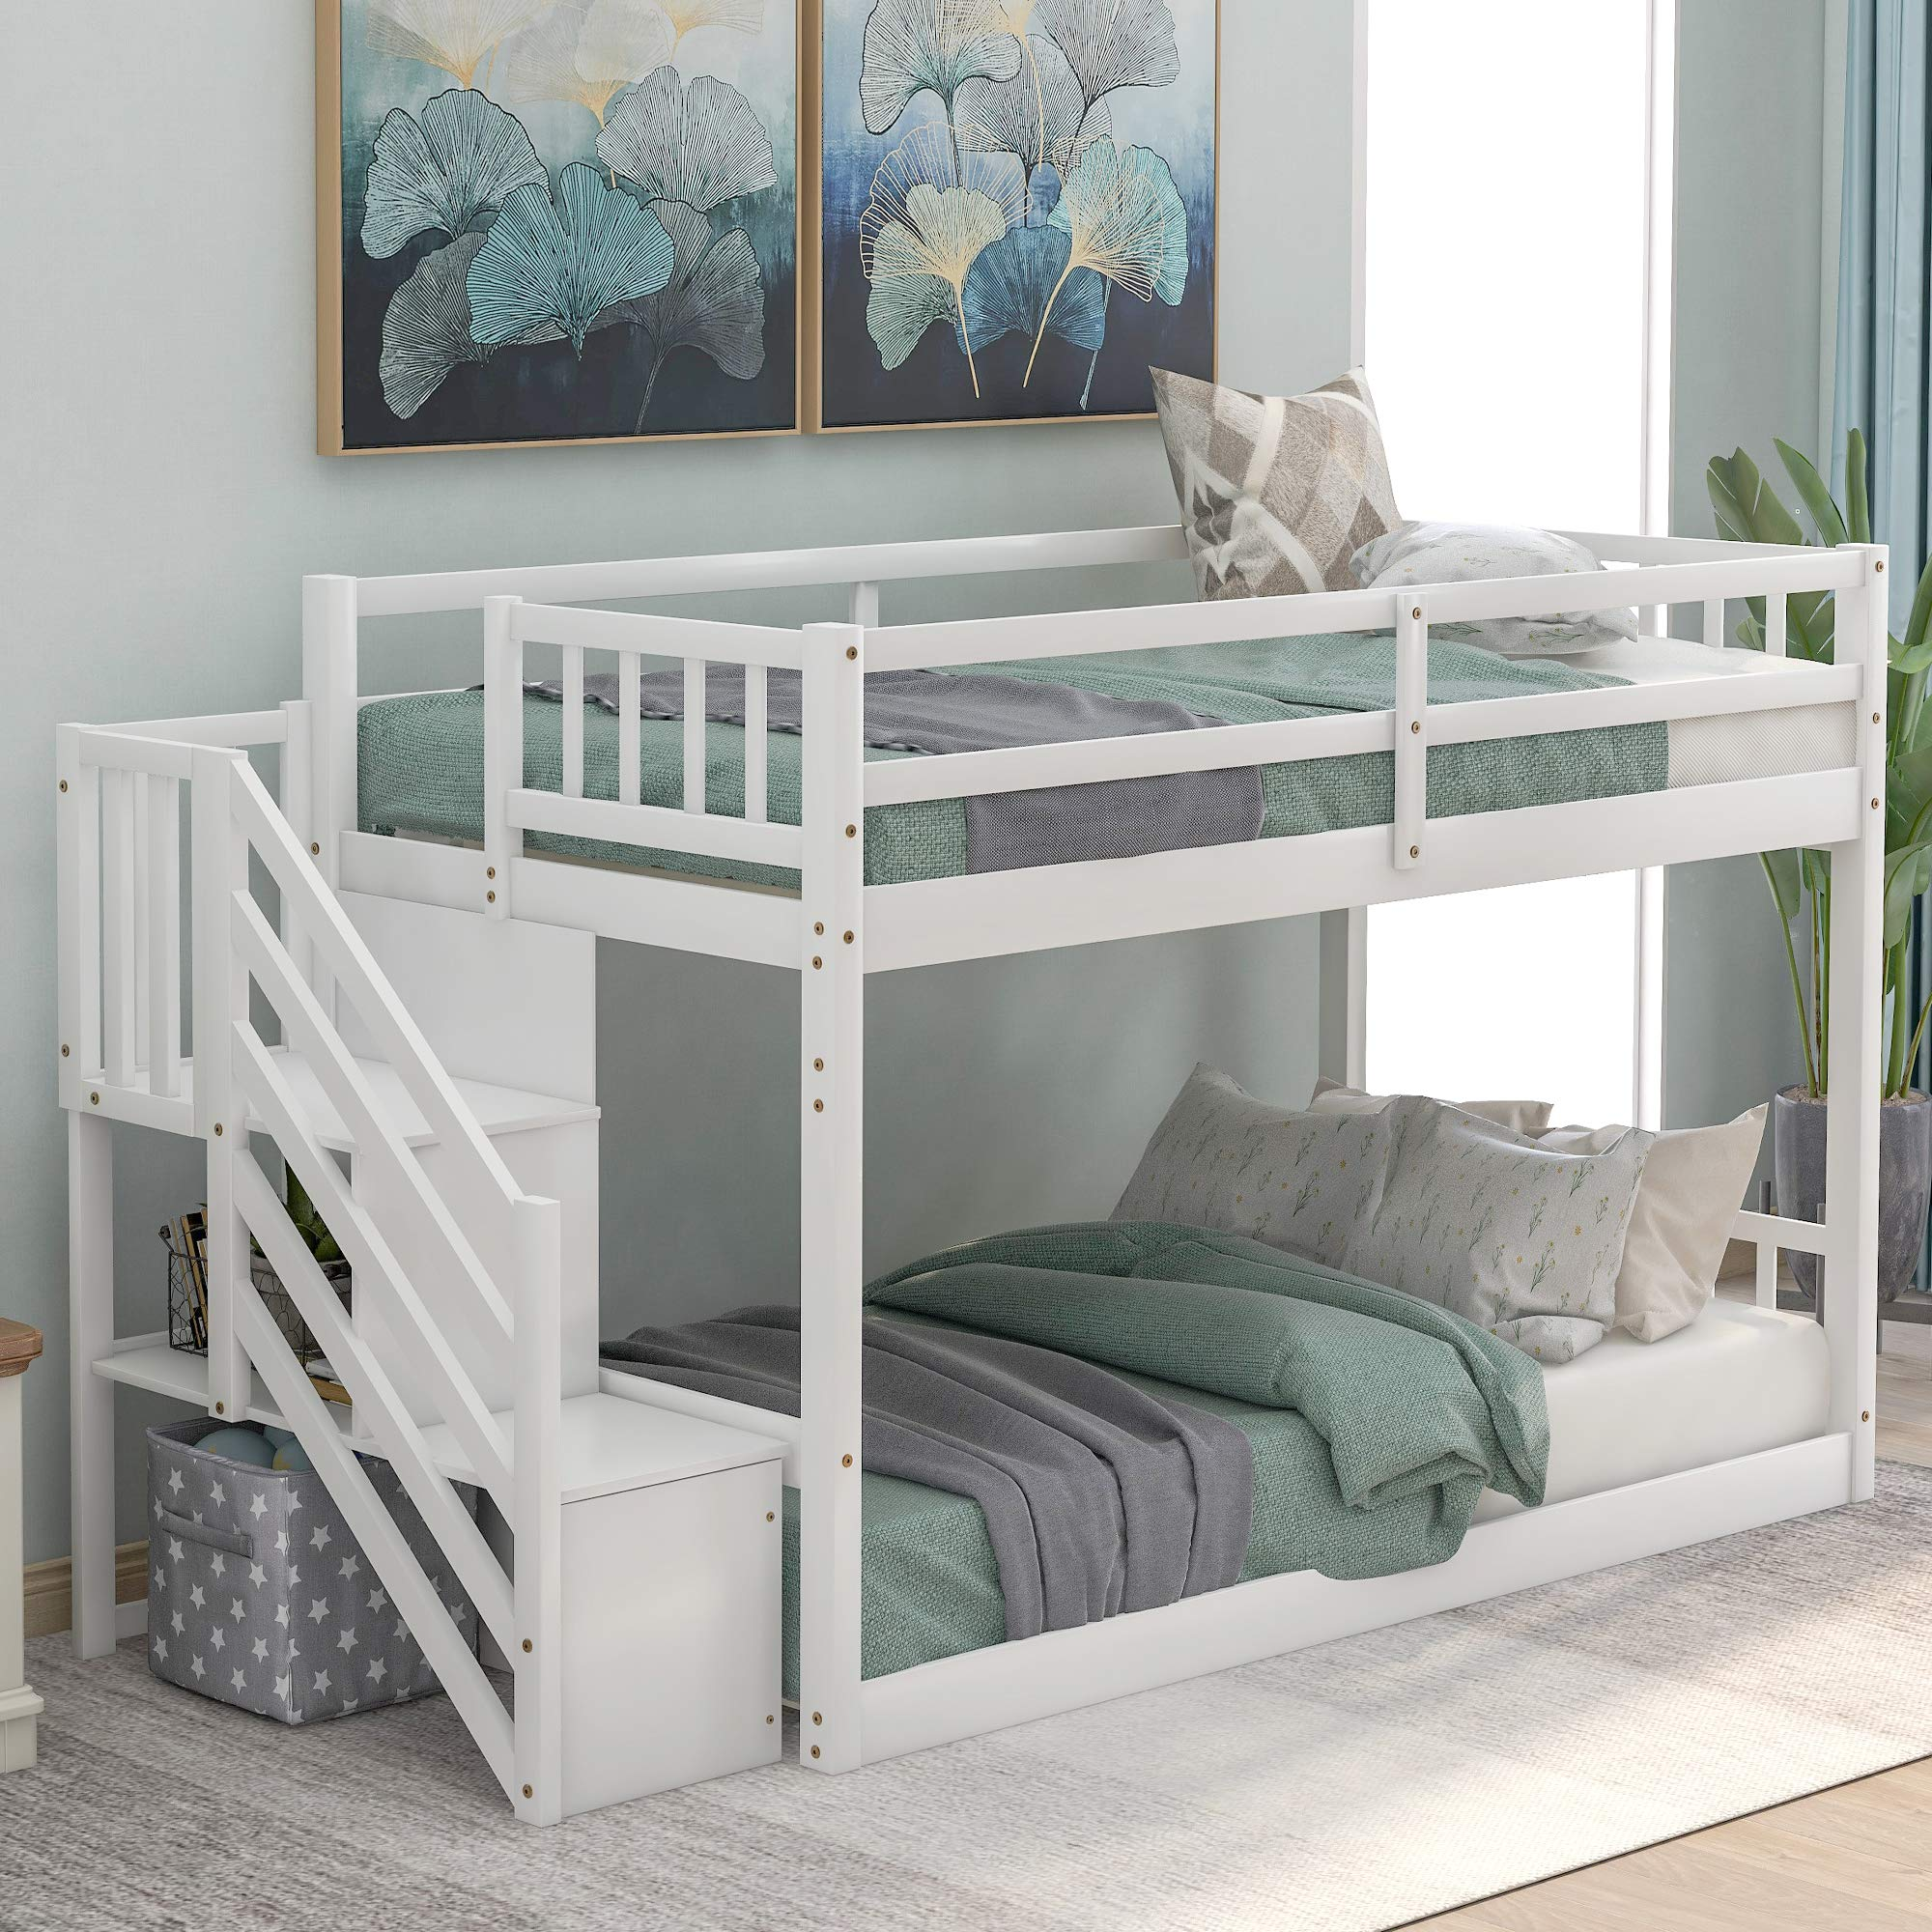 Buy Low Twin Over Twin Bunk Bed For Kids Teens Wood Twin Bunk Bed Frame With Storage Online In Qatar B0879y4z99